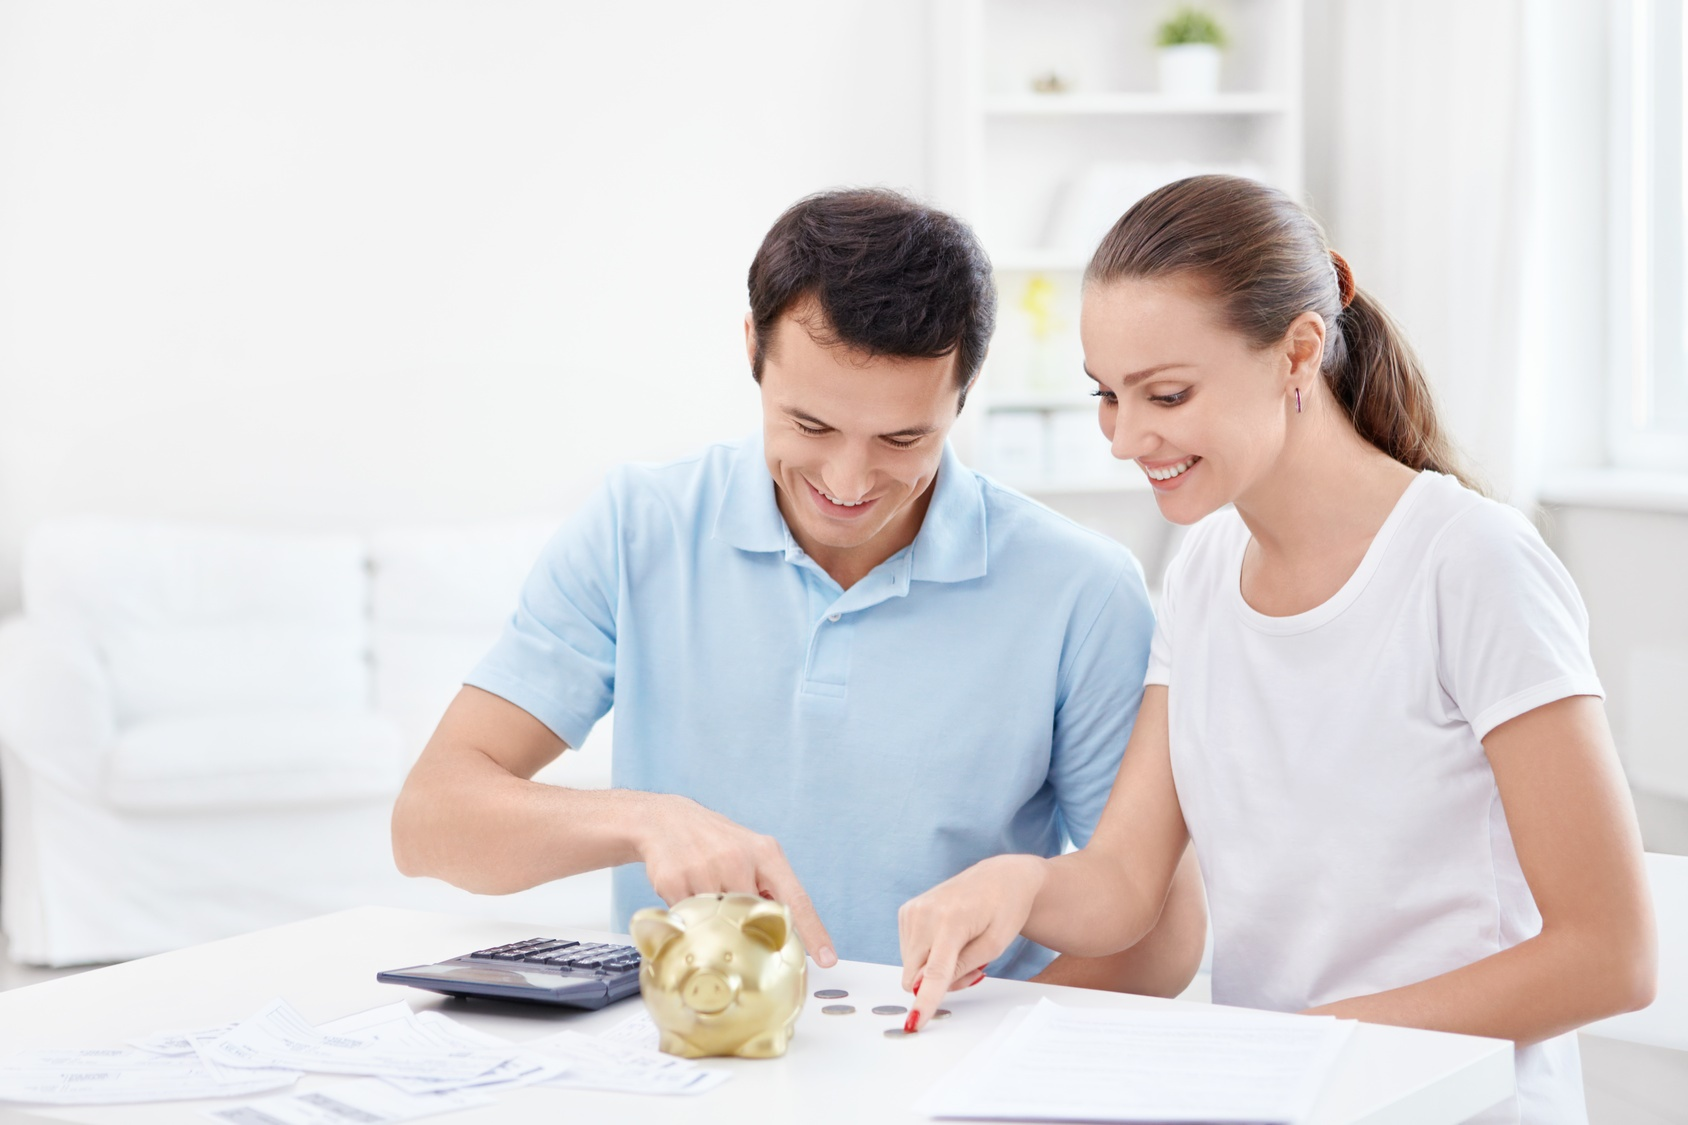 Important Tips For Budgeting Your Money